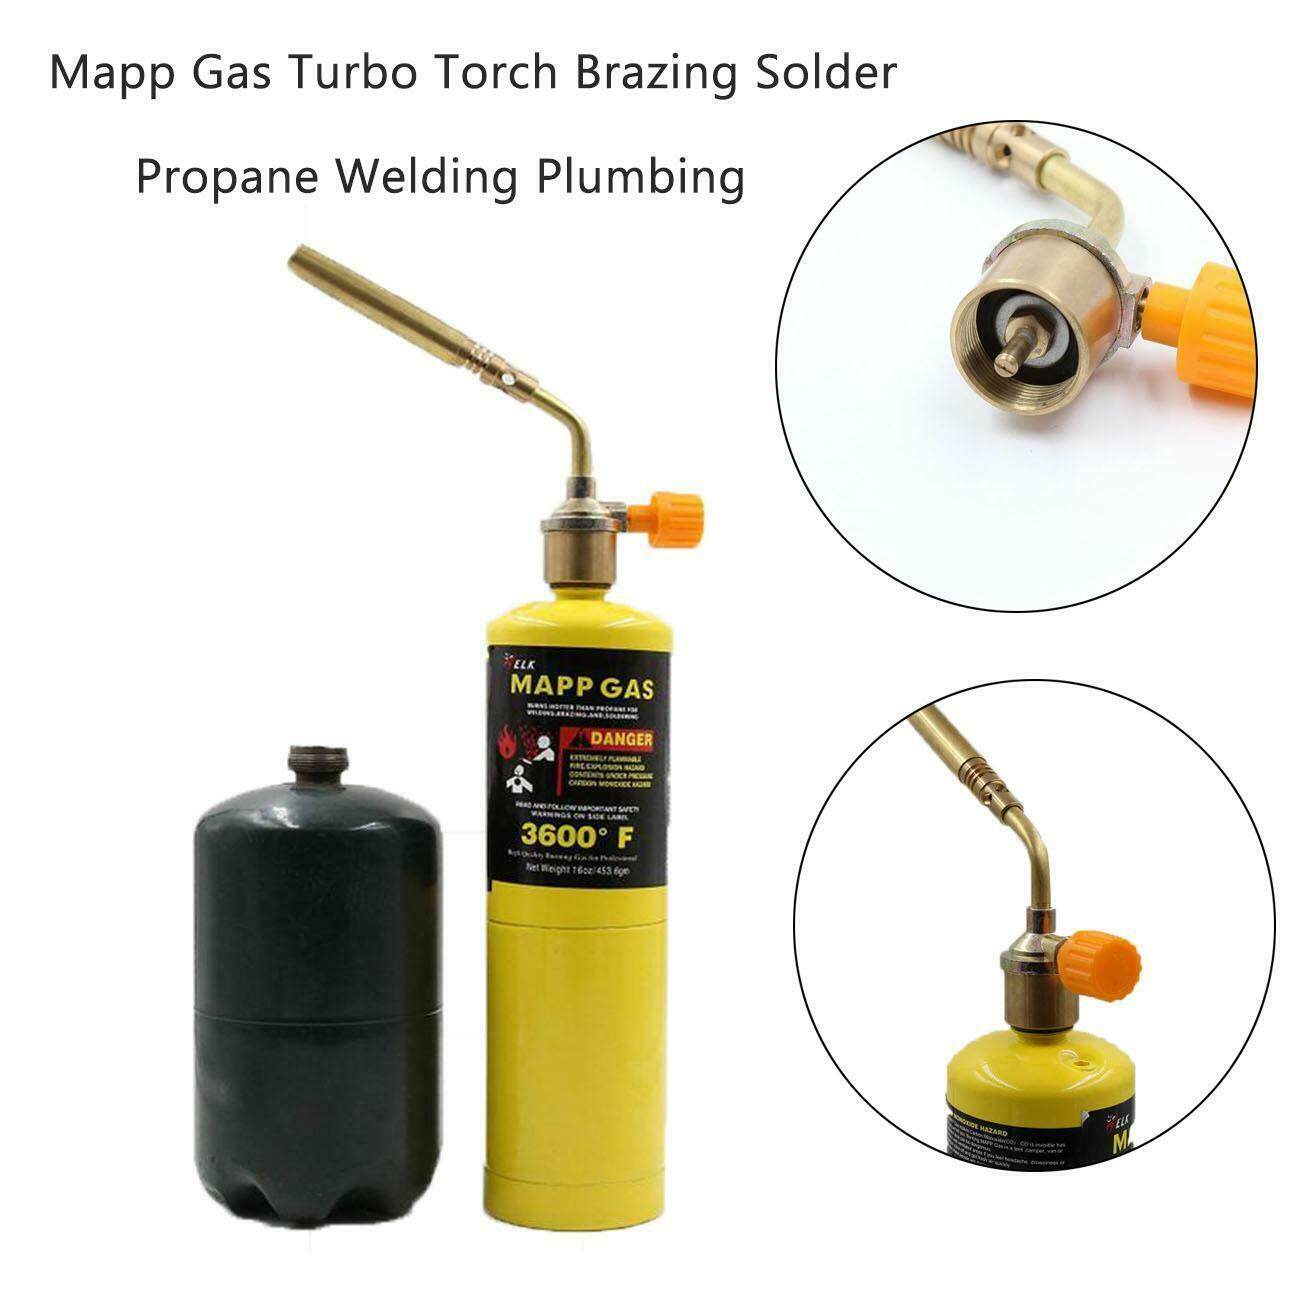 Mapp Gas Turbo Torch Brazing Solder Propane Welding Plumbing Heavy Duty Gas Weld